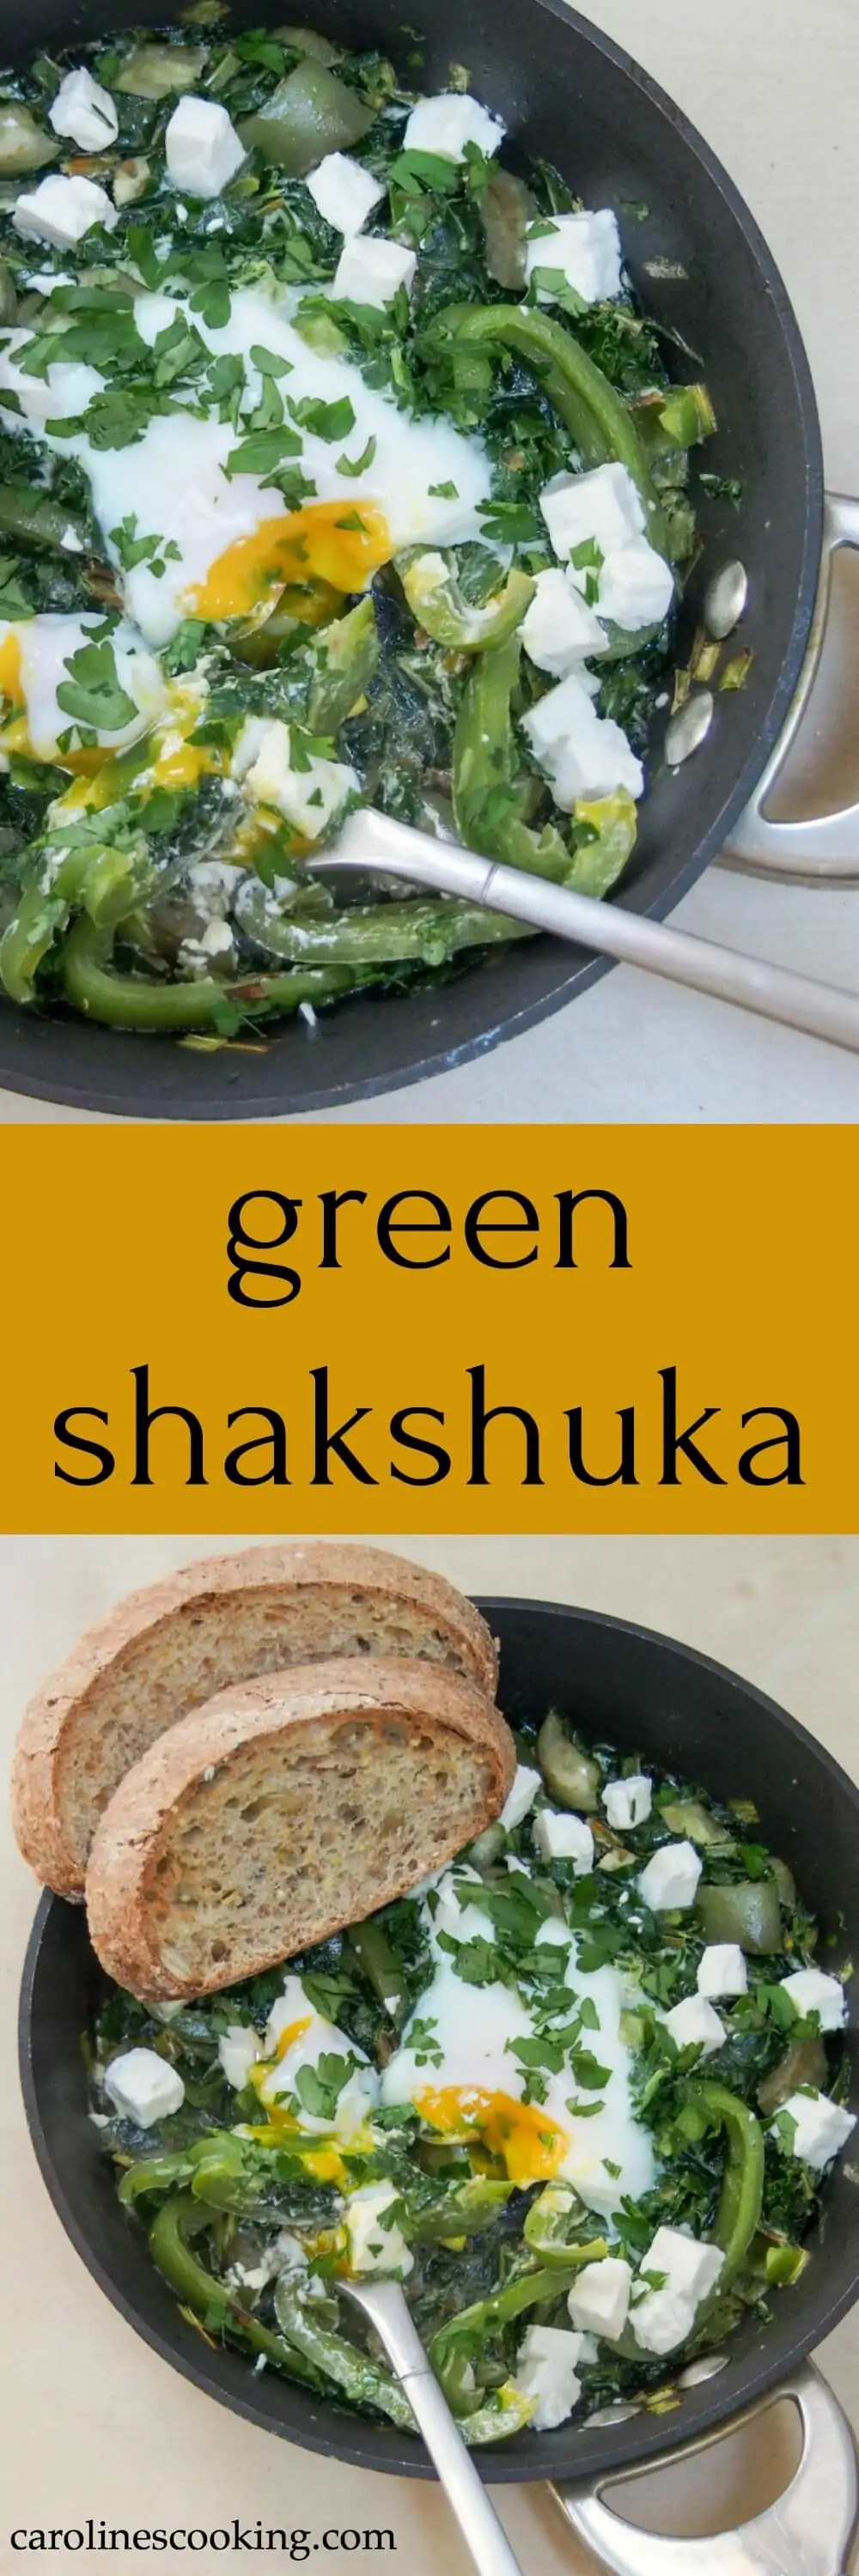 A twist on the traditional, this shakshuka is all green and all delicious. Quick to make, it's good for you too. A great brunch or anytime meal.